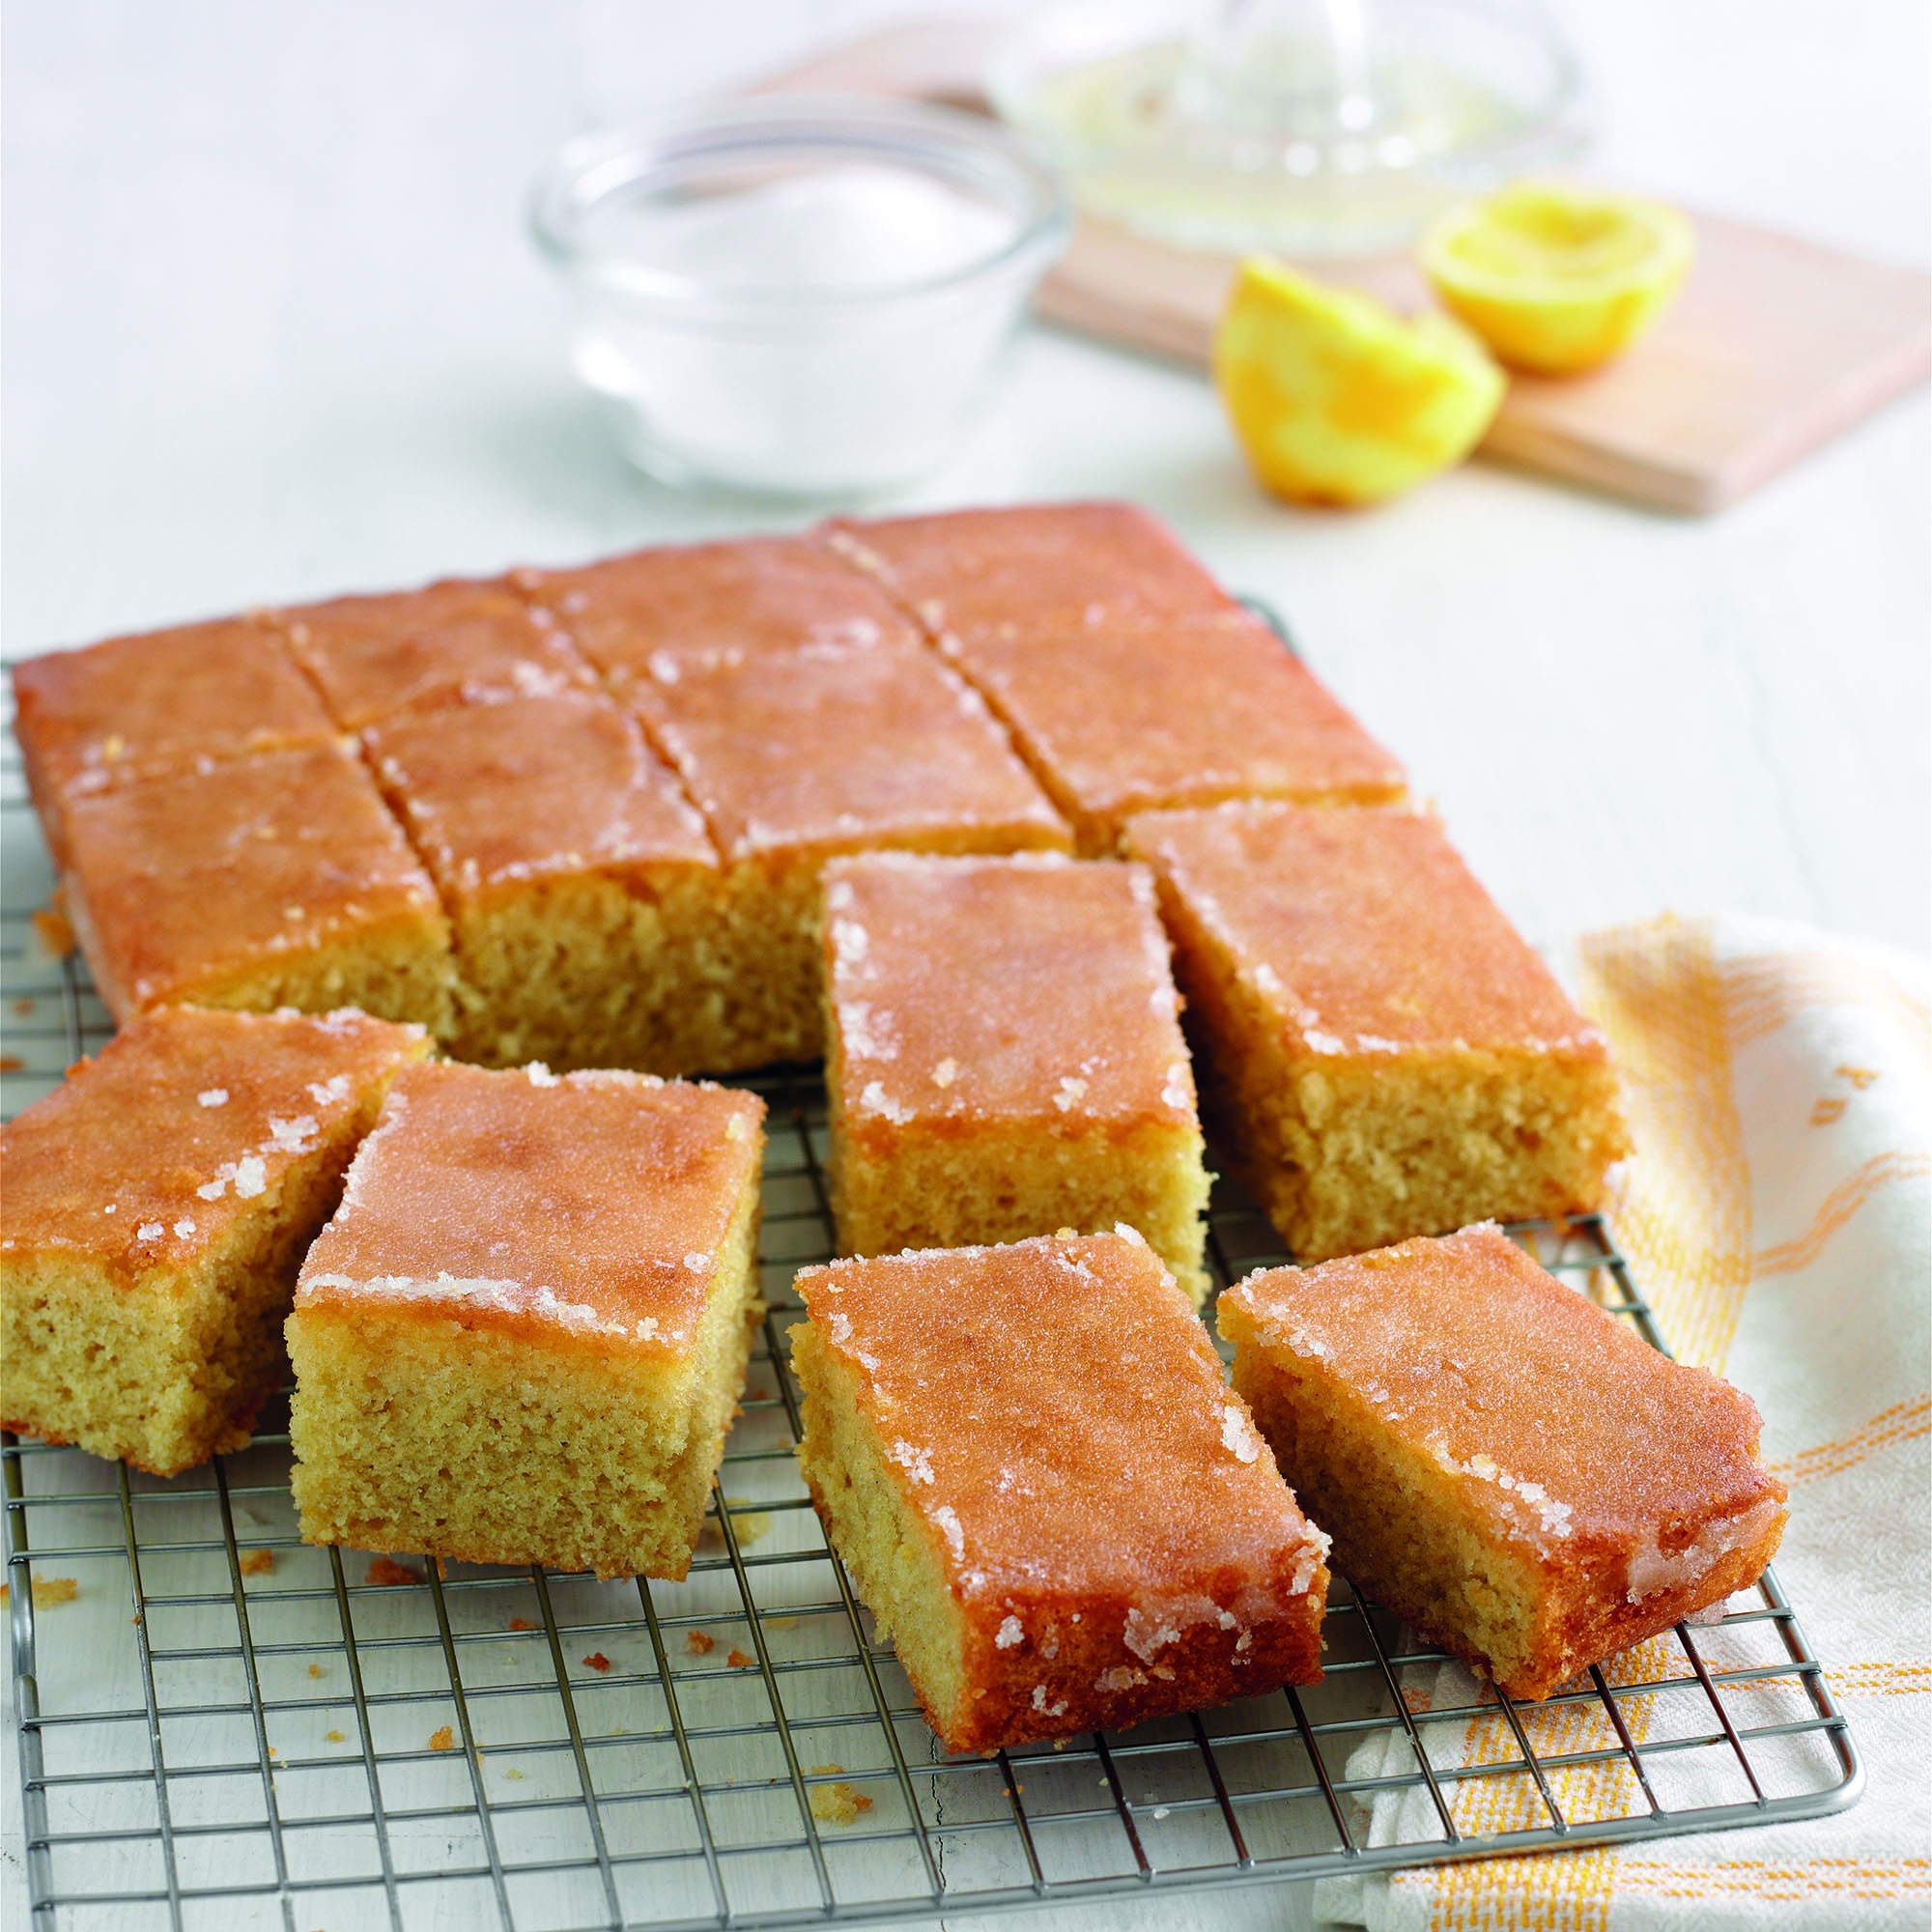 Easy Lemon Drizzle Tray Bake Cake